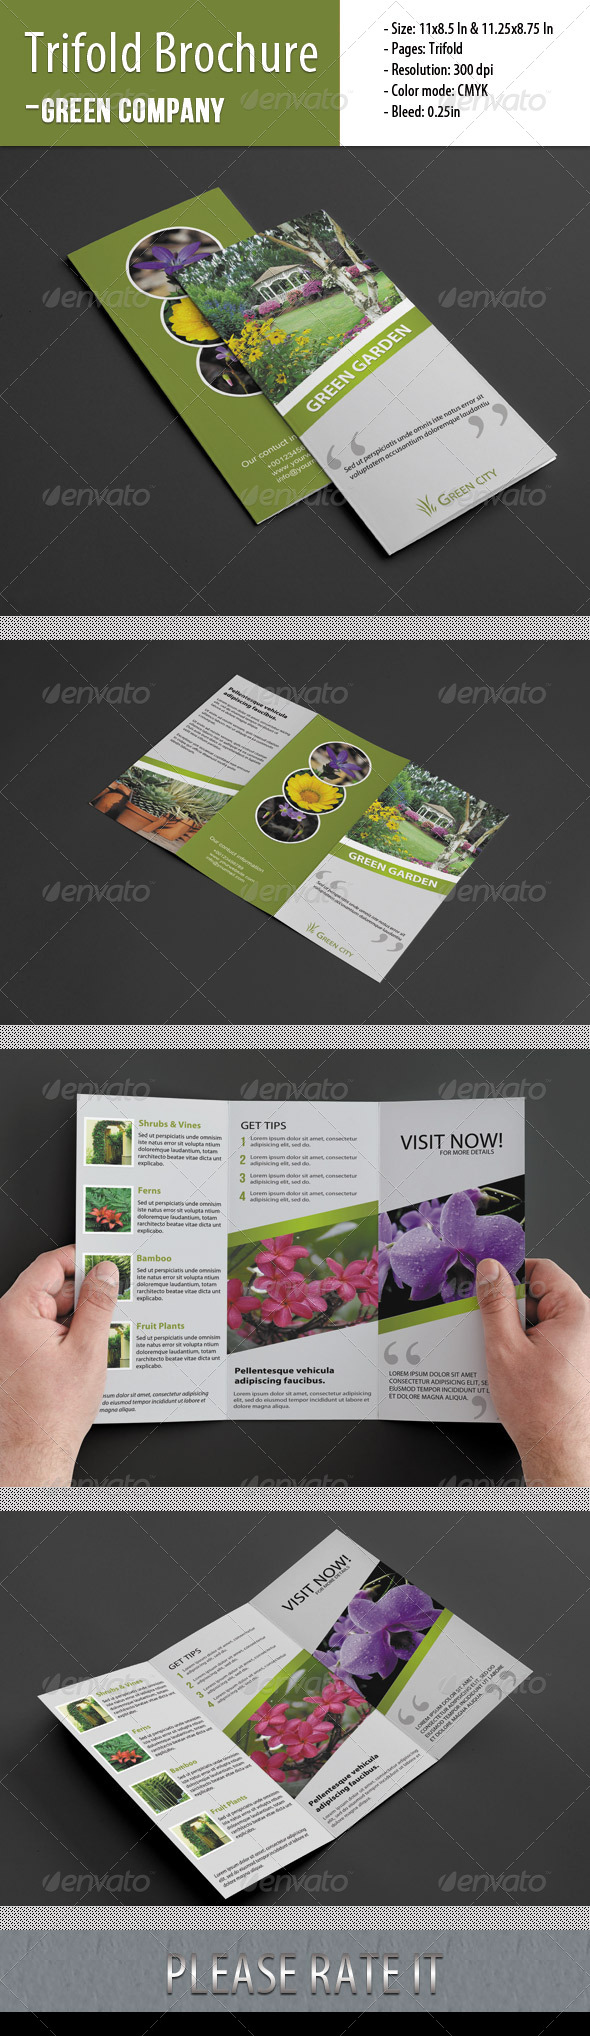 GraphicRiver Trifold Brochure For Green Company 4771251